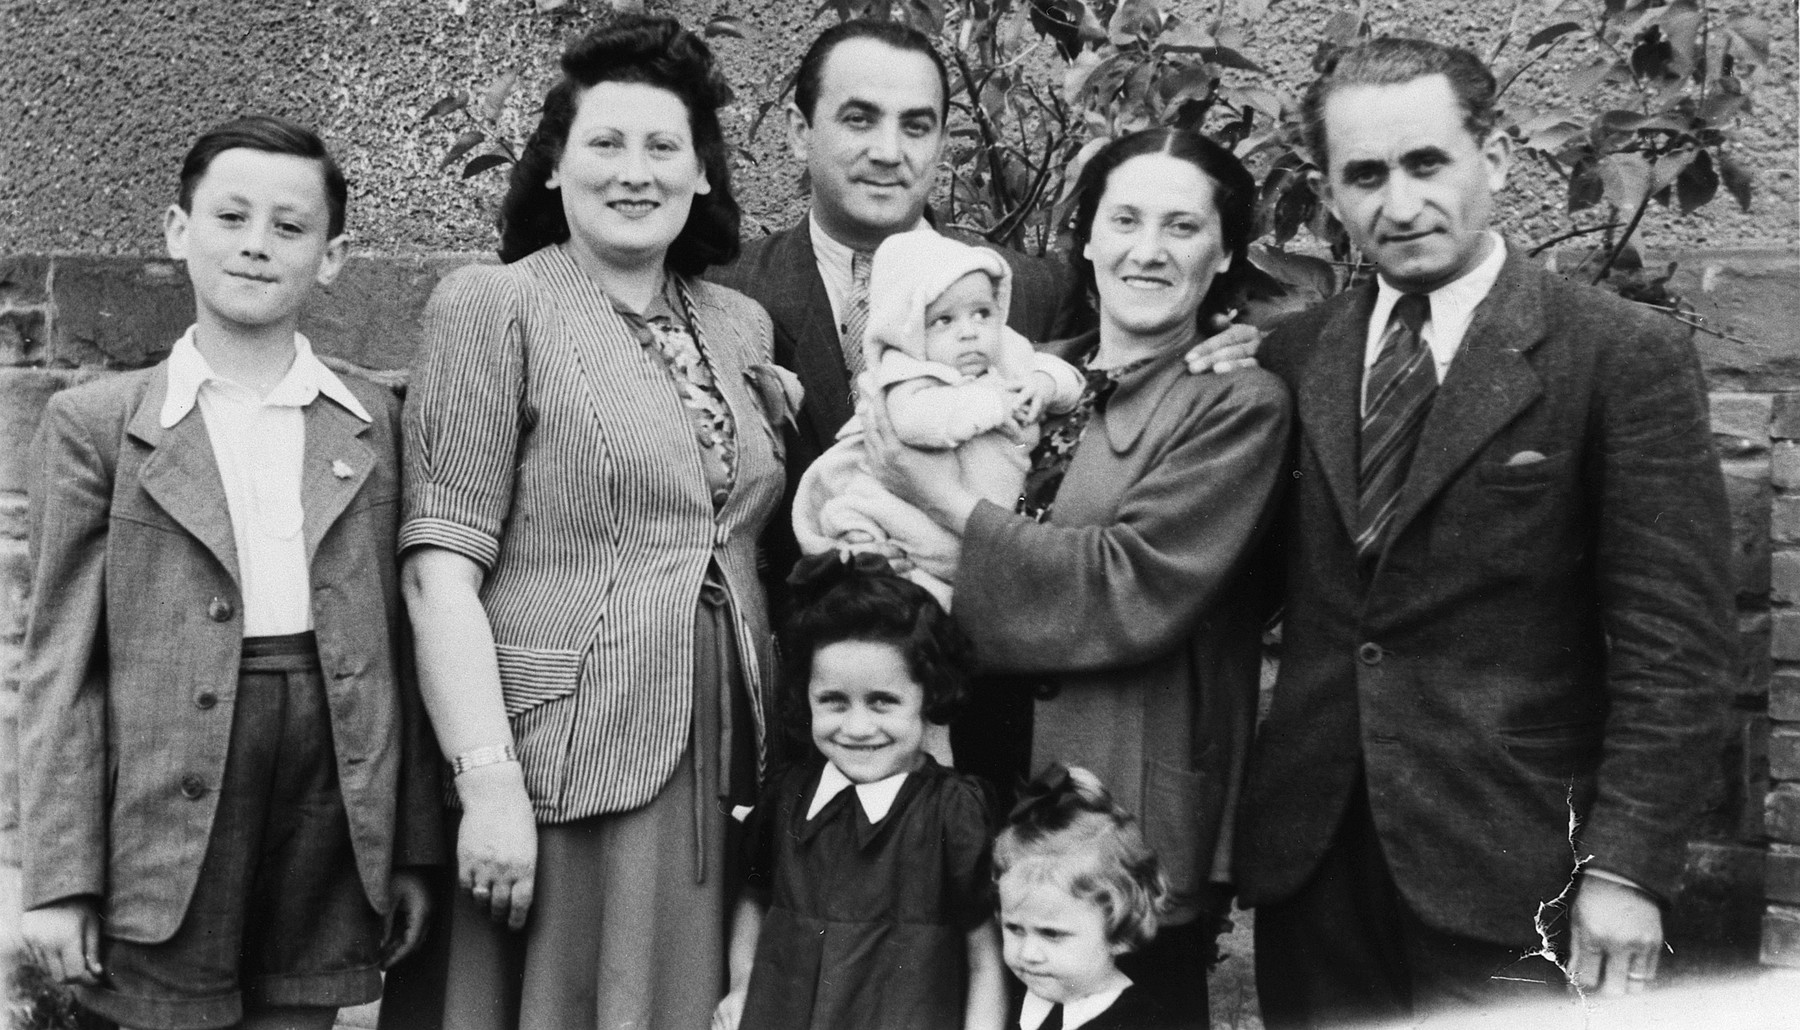 Portrait of an extended Jewish family in the Stuttgart displaced person's camp.  Pictured from left to right are Lova Warszawczyk and his parents, Masha and Josef Warszawczyk, Josef's brother Nathan Warszawczyk, his wife Chana holding her baby Baruch, and daughters Mira and Zilla .